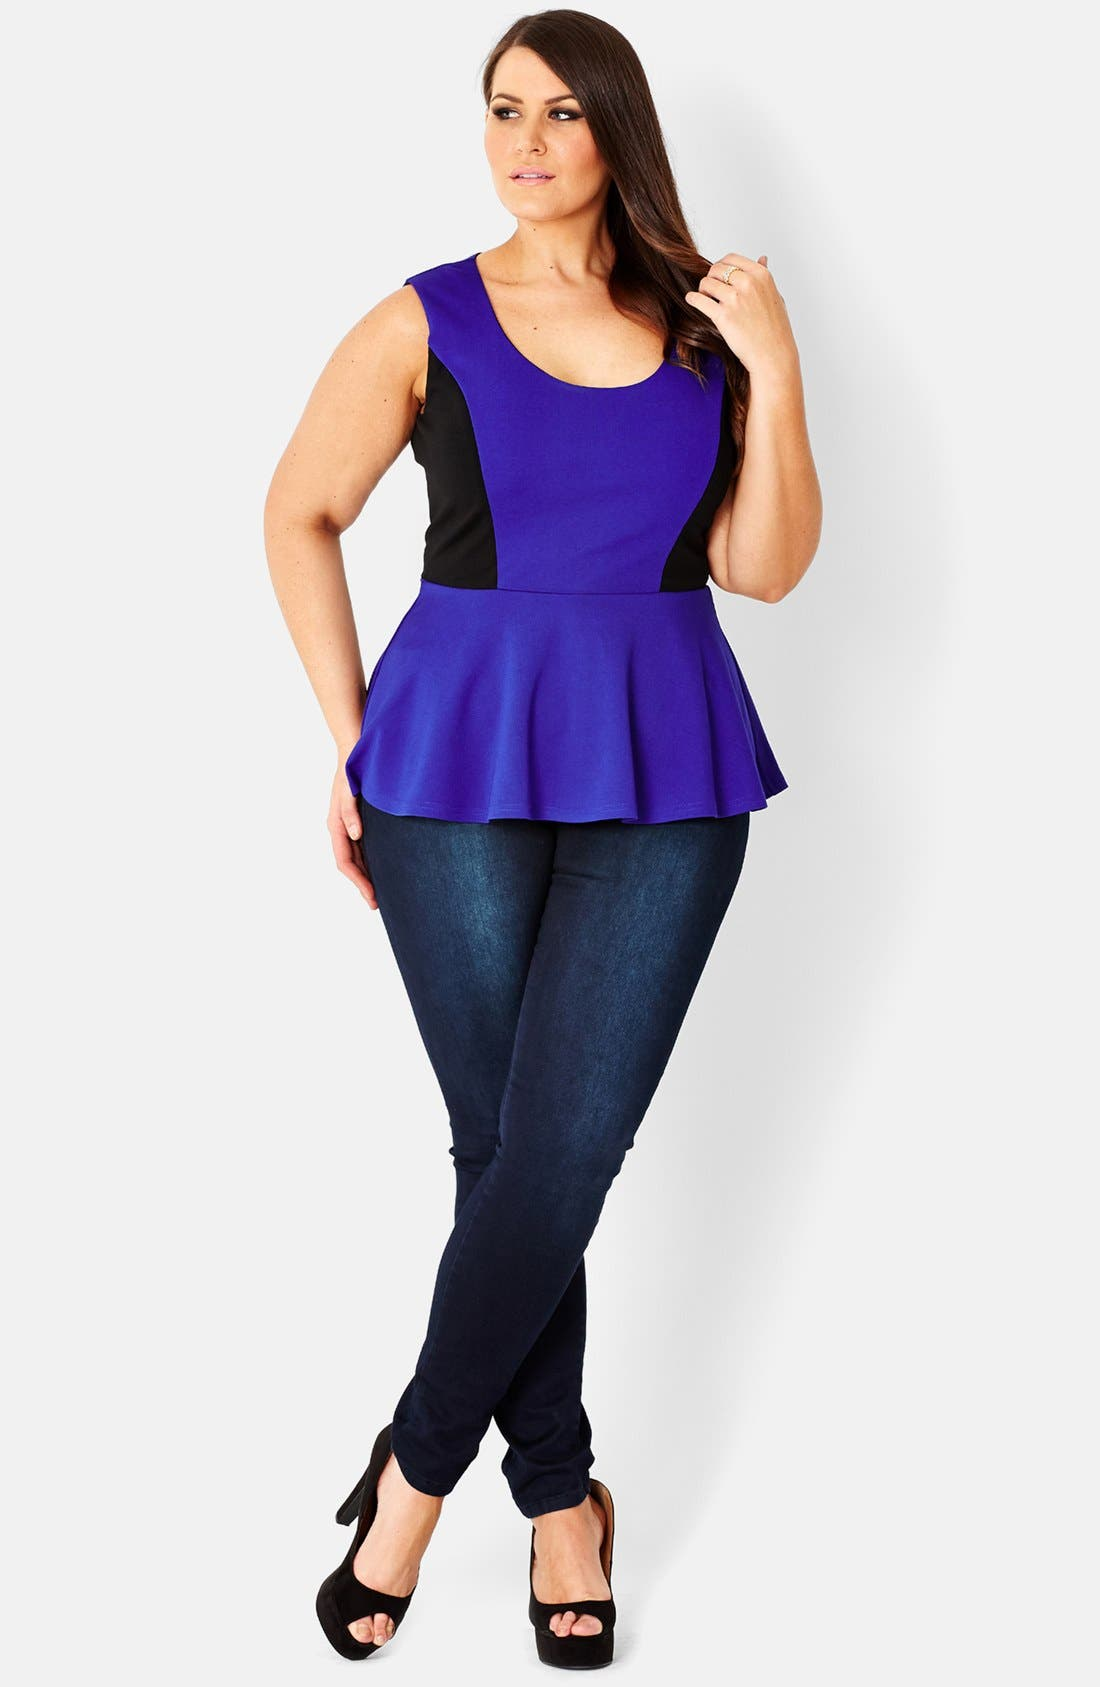 Alternate Image 1 Selected - City Chic Colorblock Sleeveless Peplum Top (Plus Size)